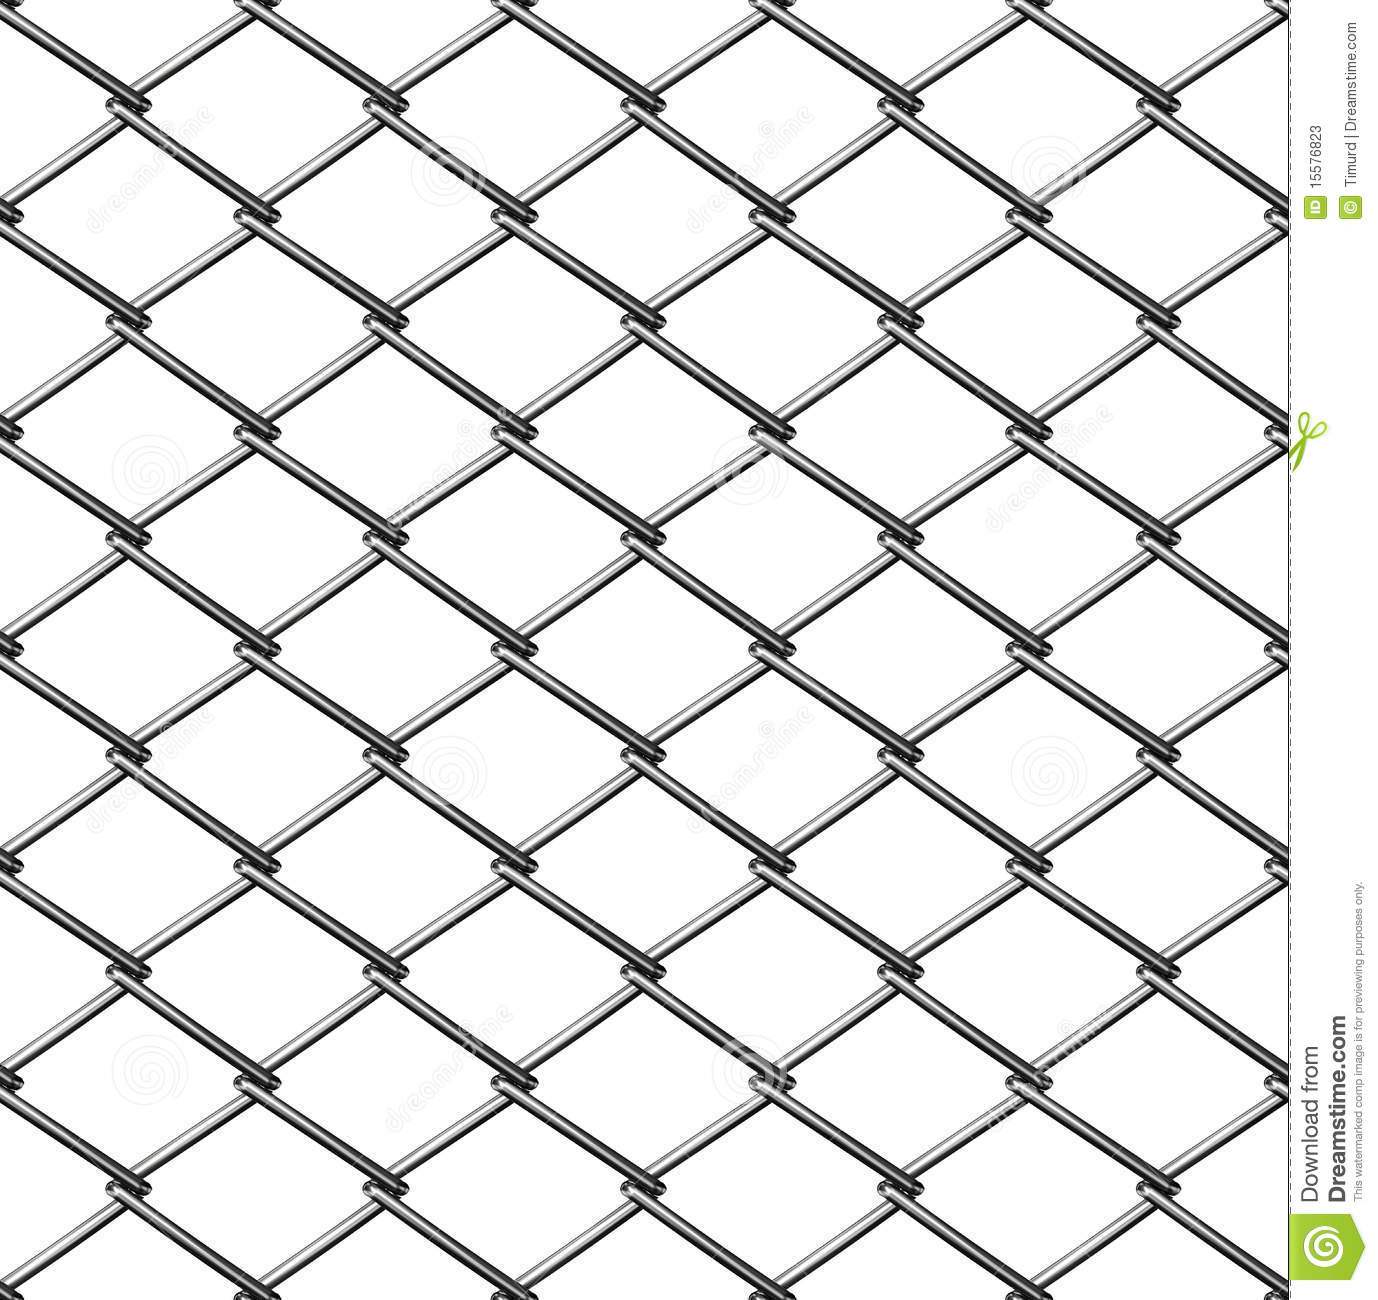 Chainlink fence seamless stock image cartoondealer